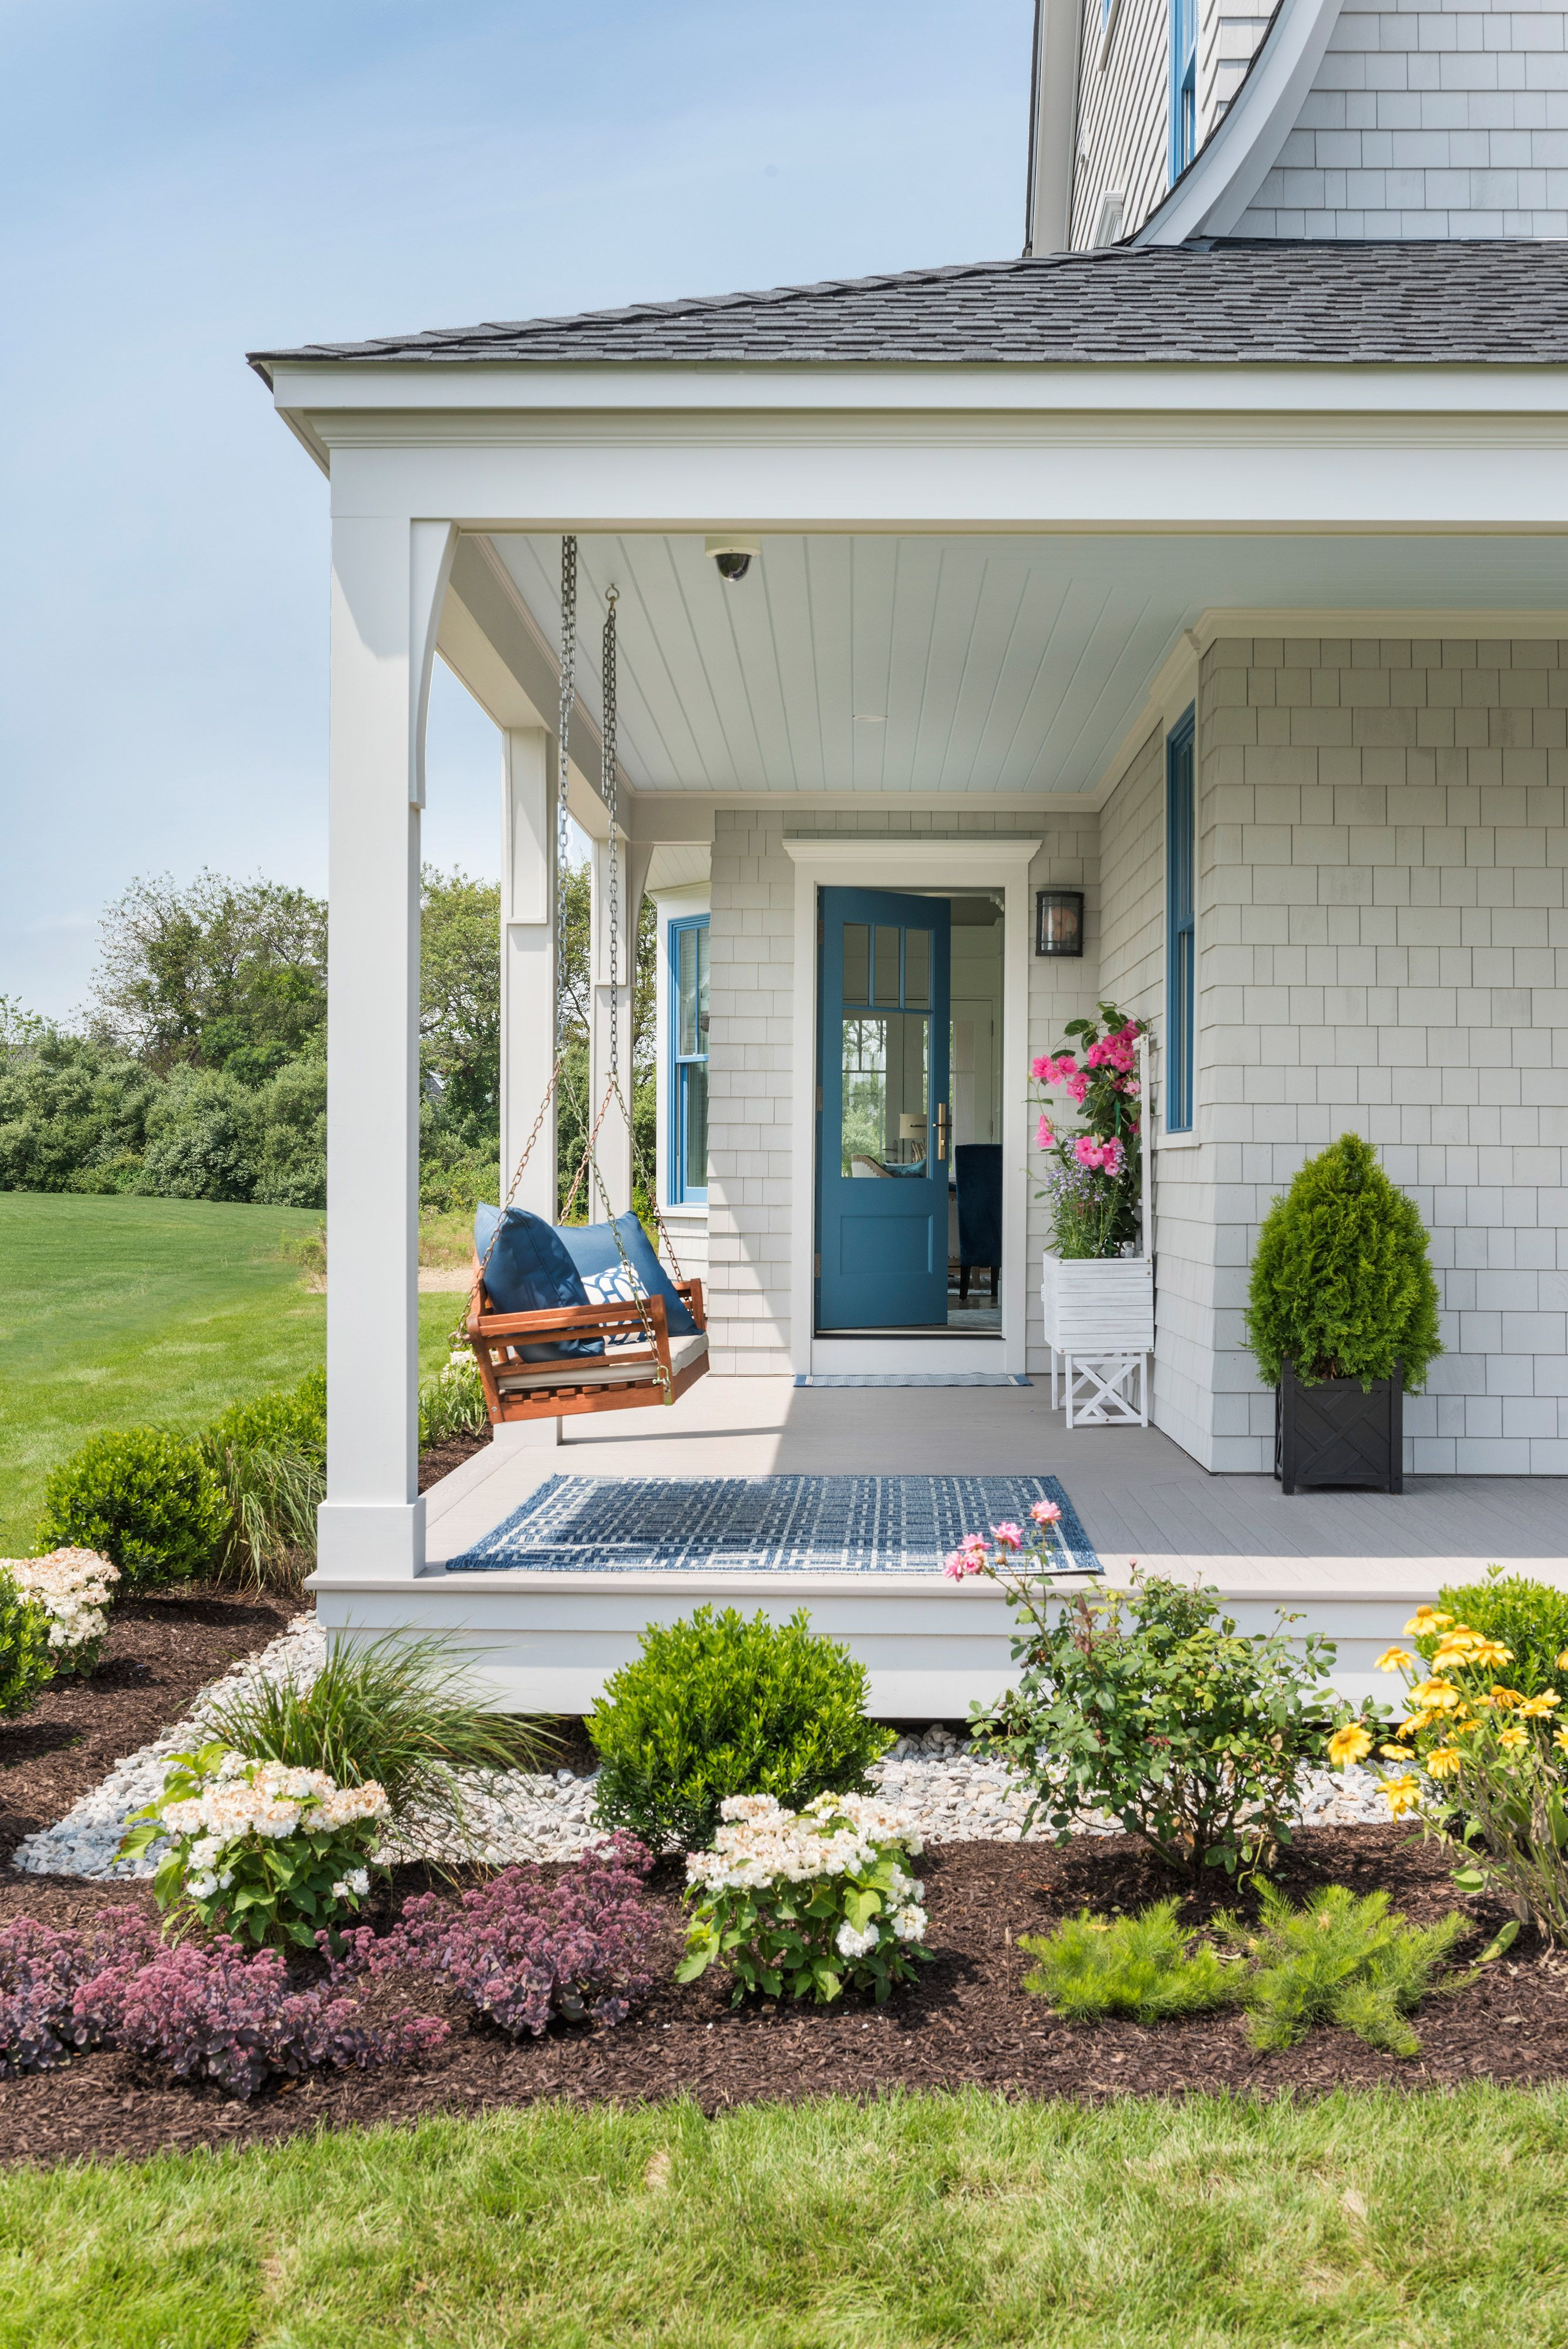 Idea House 2017 Outdoor Living Reveal This Old House In 2020 House With Porch Old Houses French Doors Exterior